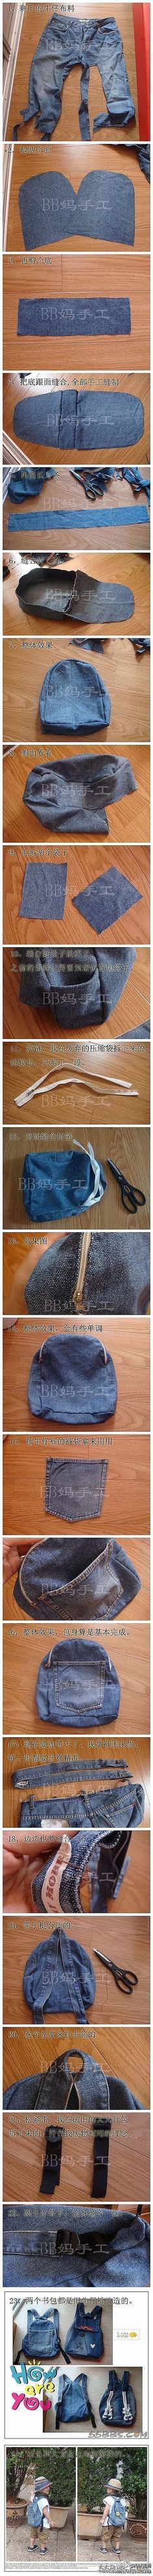 Step by step photo tutorial for how to recycle worn jeans into an adorable and functional child's backpack!